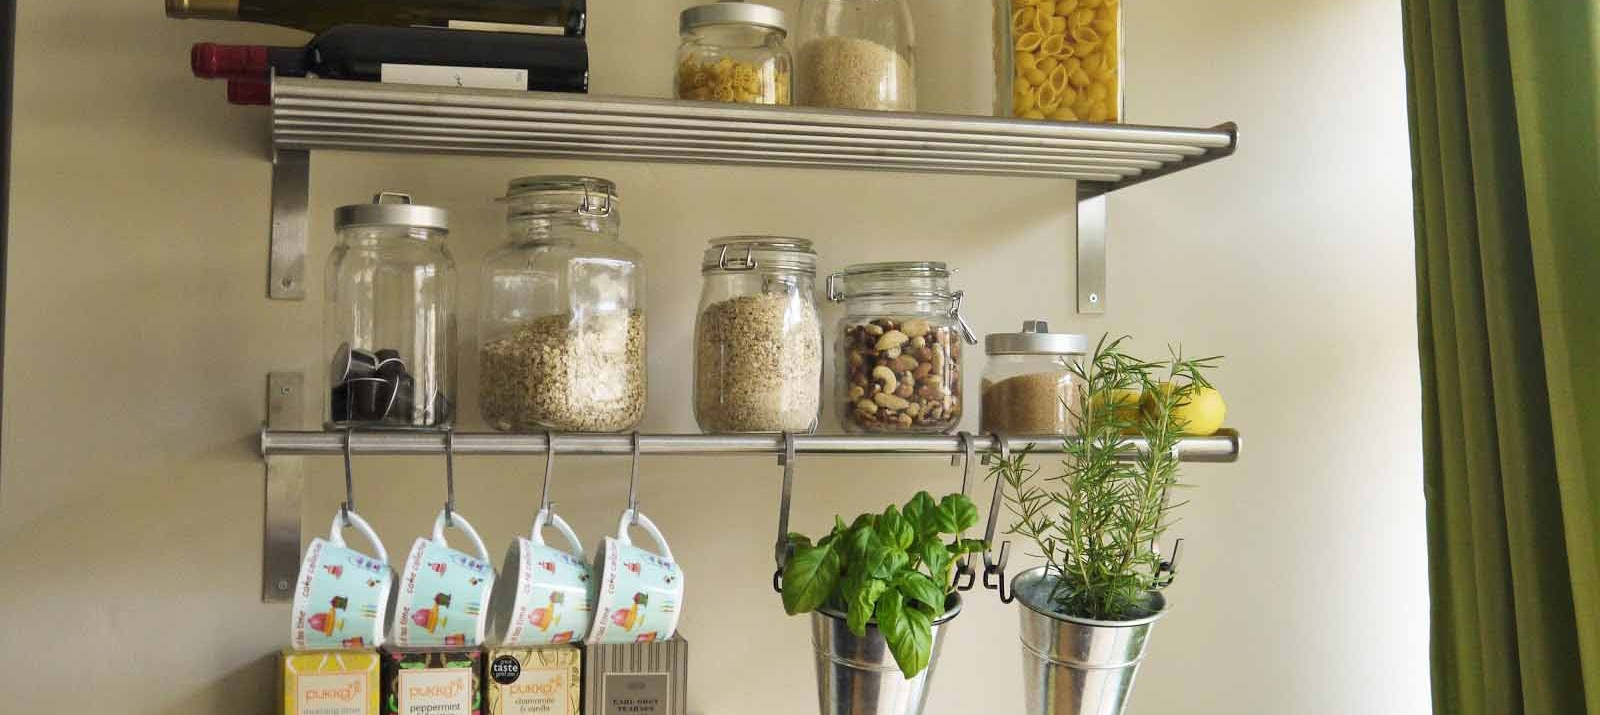 Charmant Metal Shelves And S Hooks Used For Cheap Storage In A Small Kitchen.